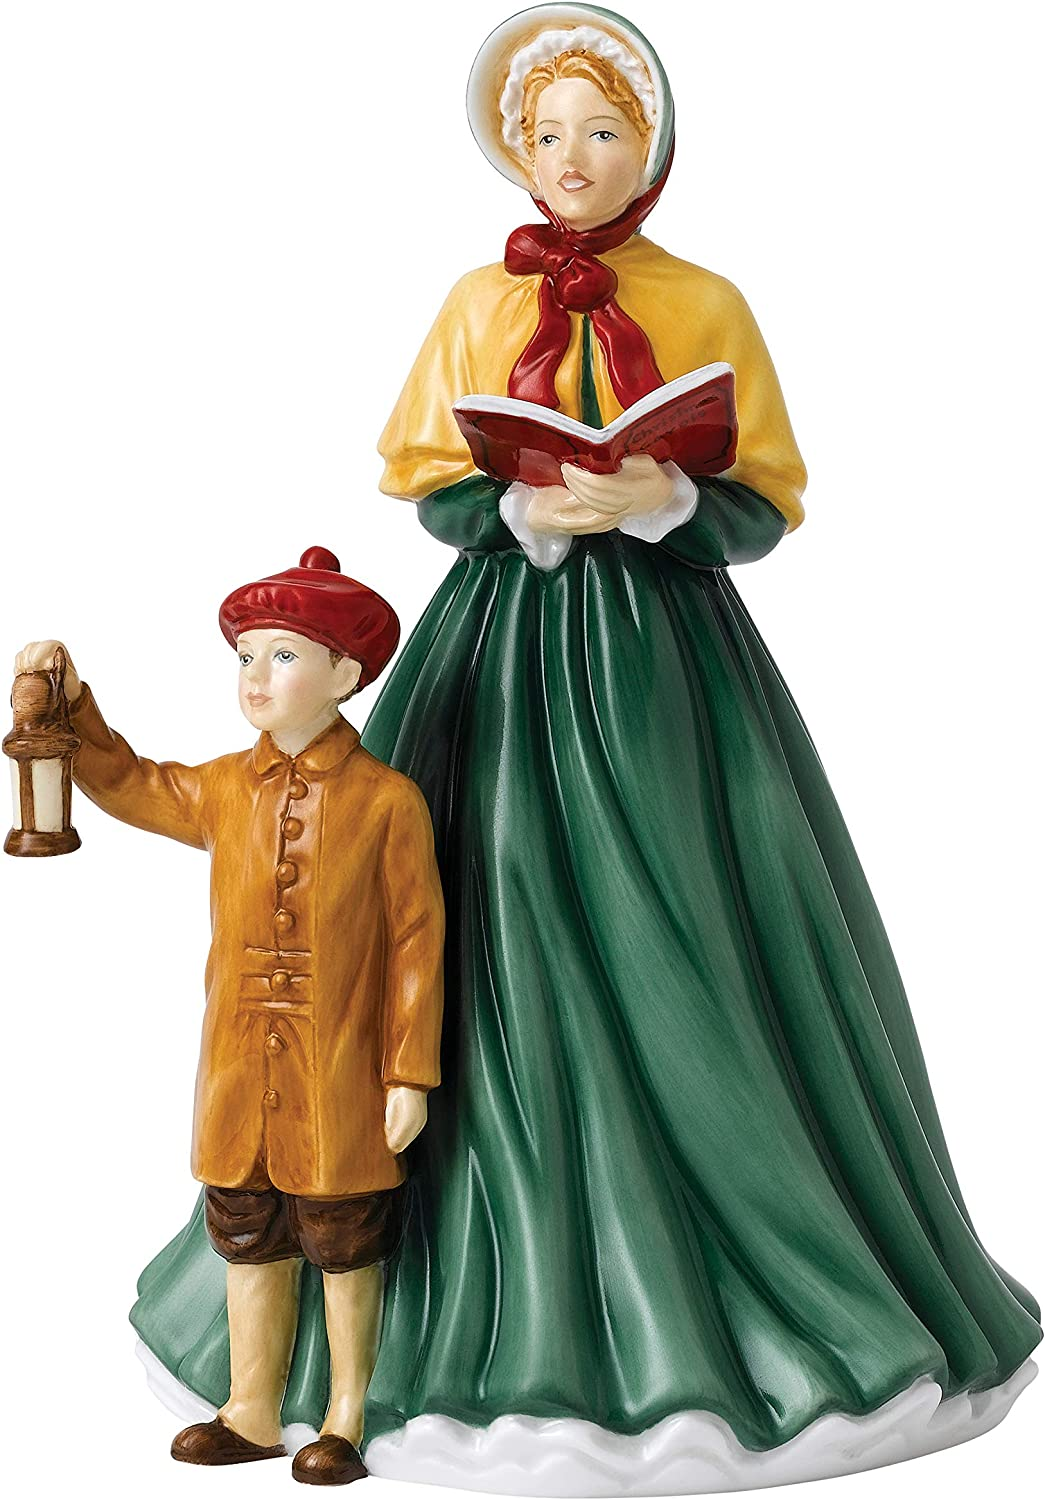 Royal Doulton Singers 2018 6.7  HN 5888 Here We Here We Come A-Caroling Figurine, Green